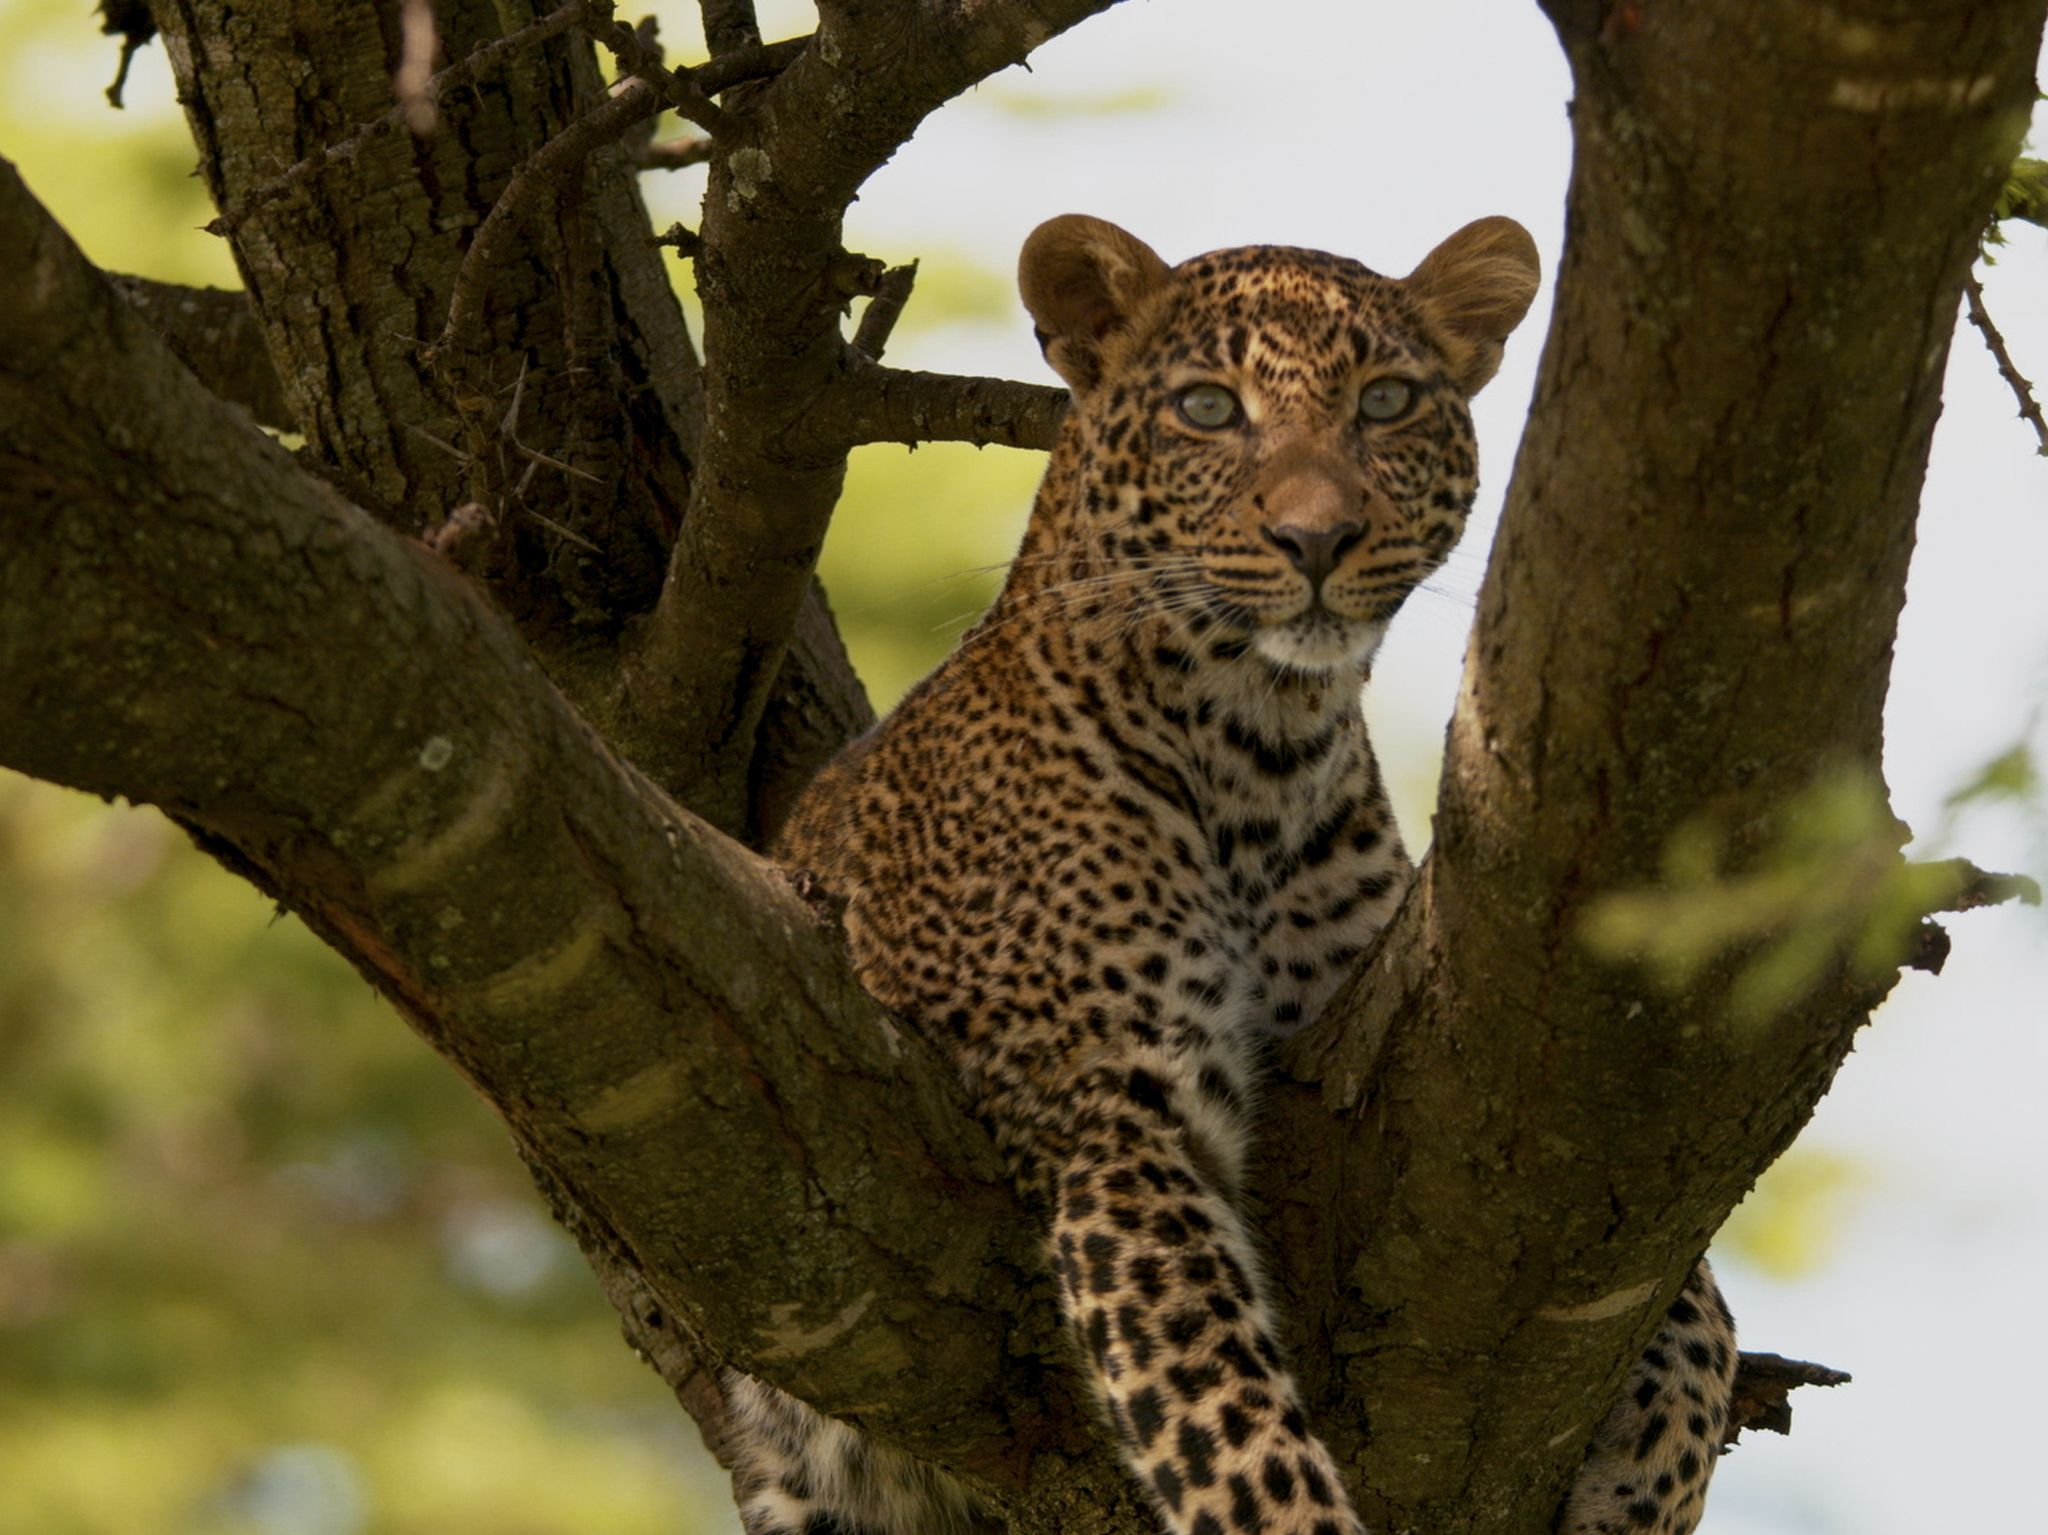 Toto lying in a tree. This image is from Jade Eyed Leopard. [Photo of the day - February 2020]